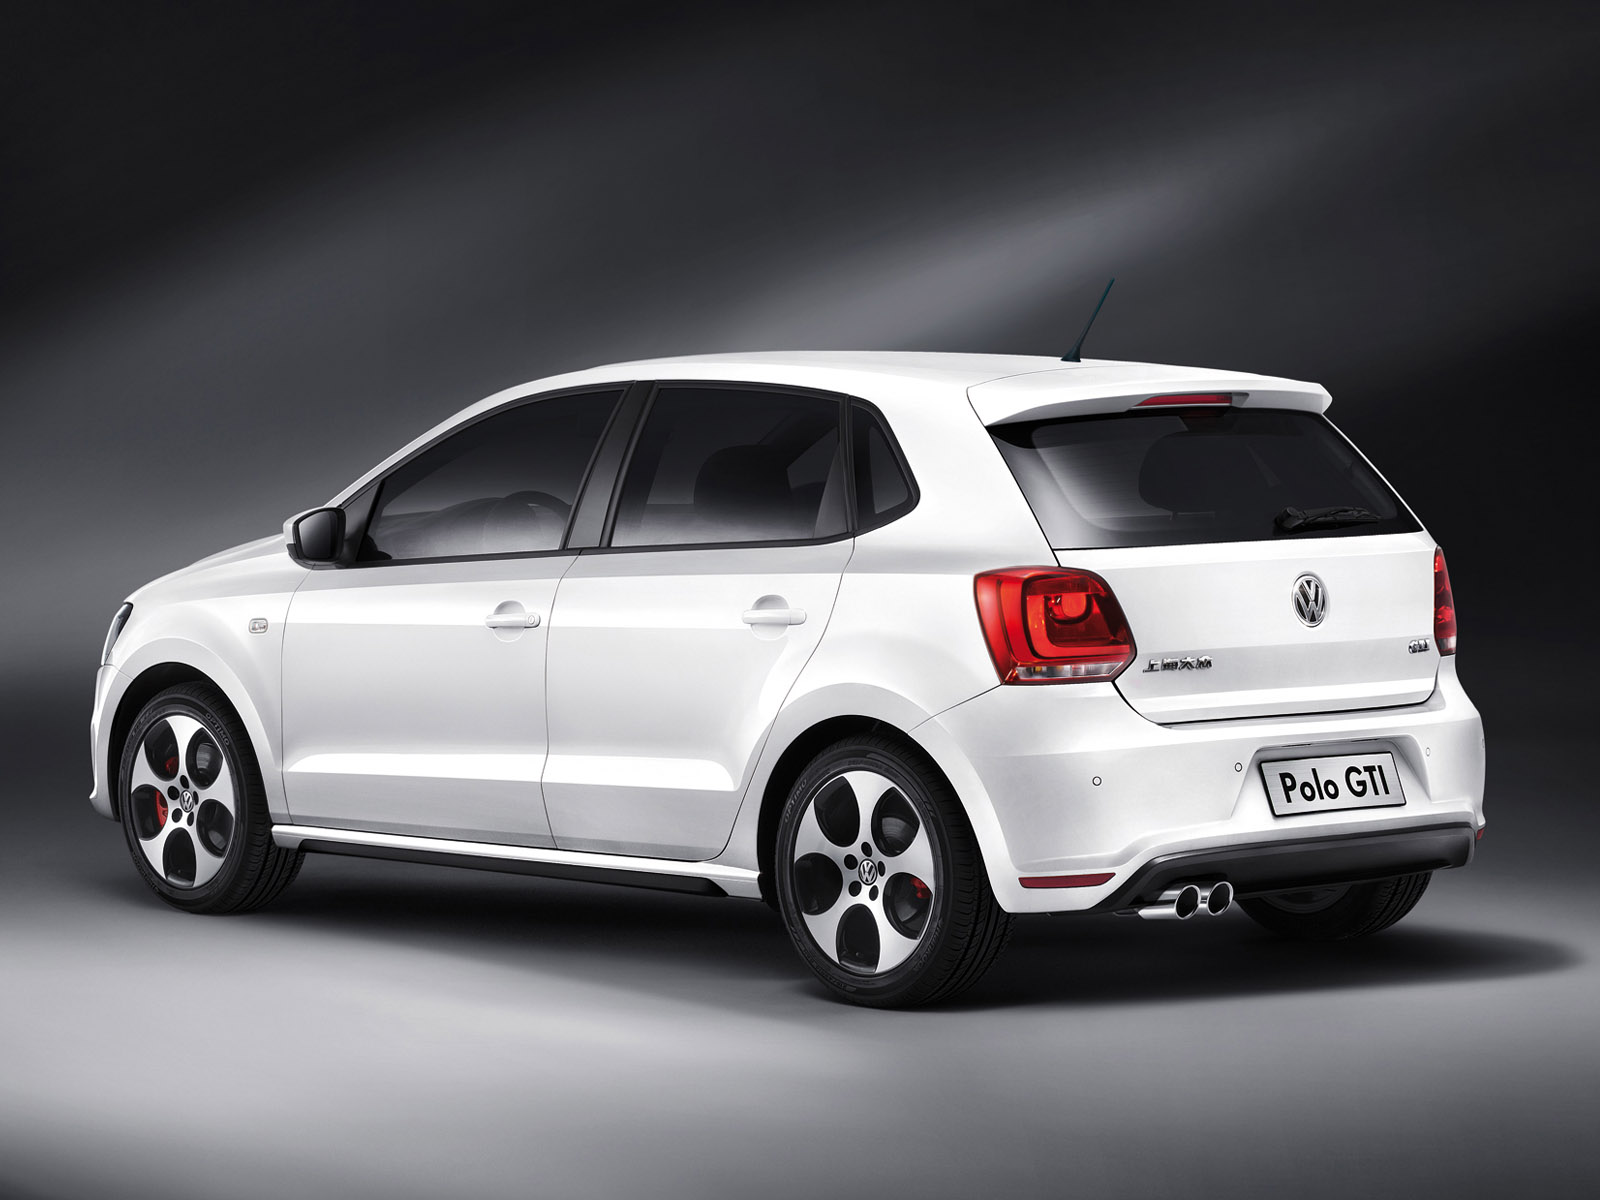 volkswagen polo gti 5 door china 2012 volkswagen polo gti. Black Bedroom Furniture Sets. Home Design Ideas